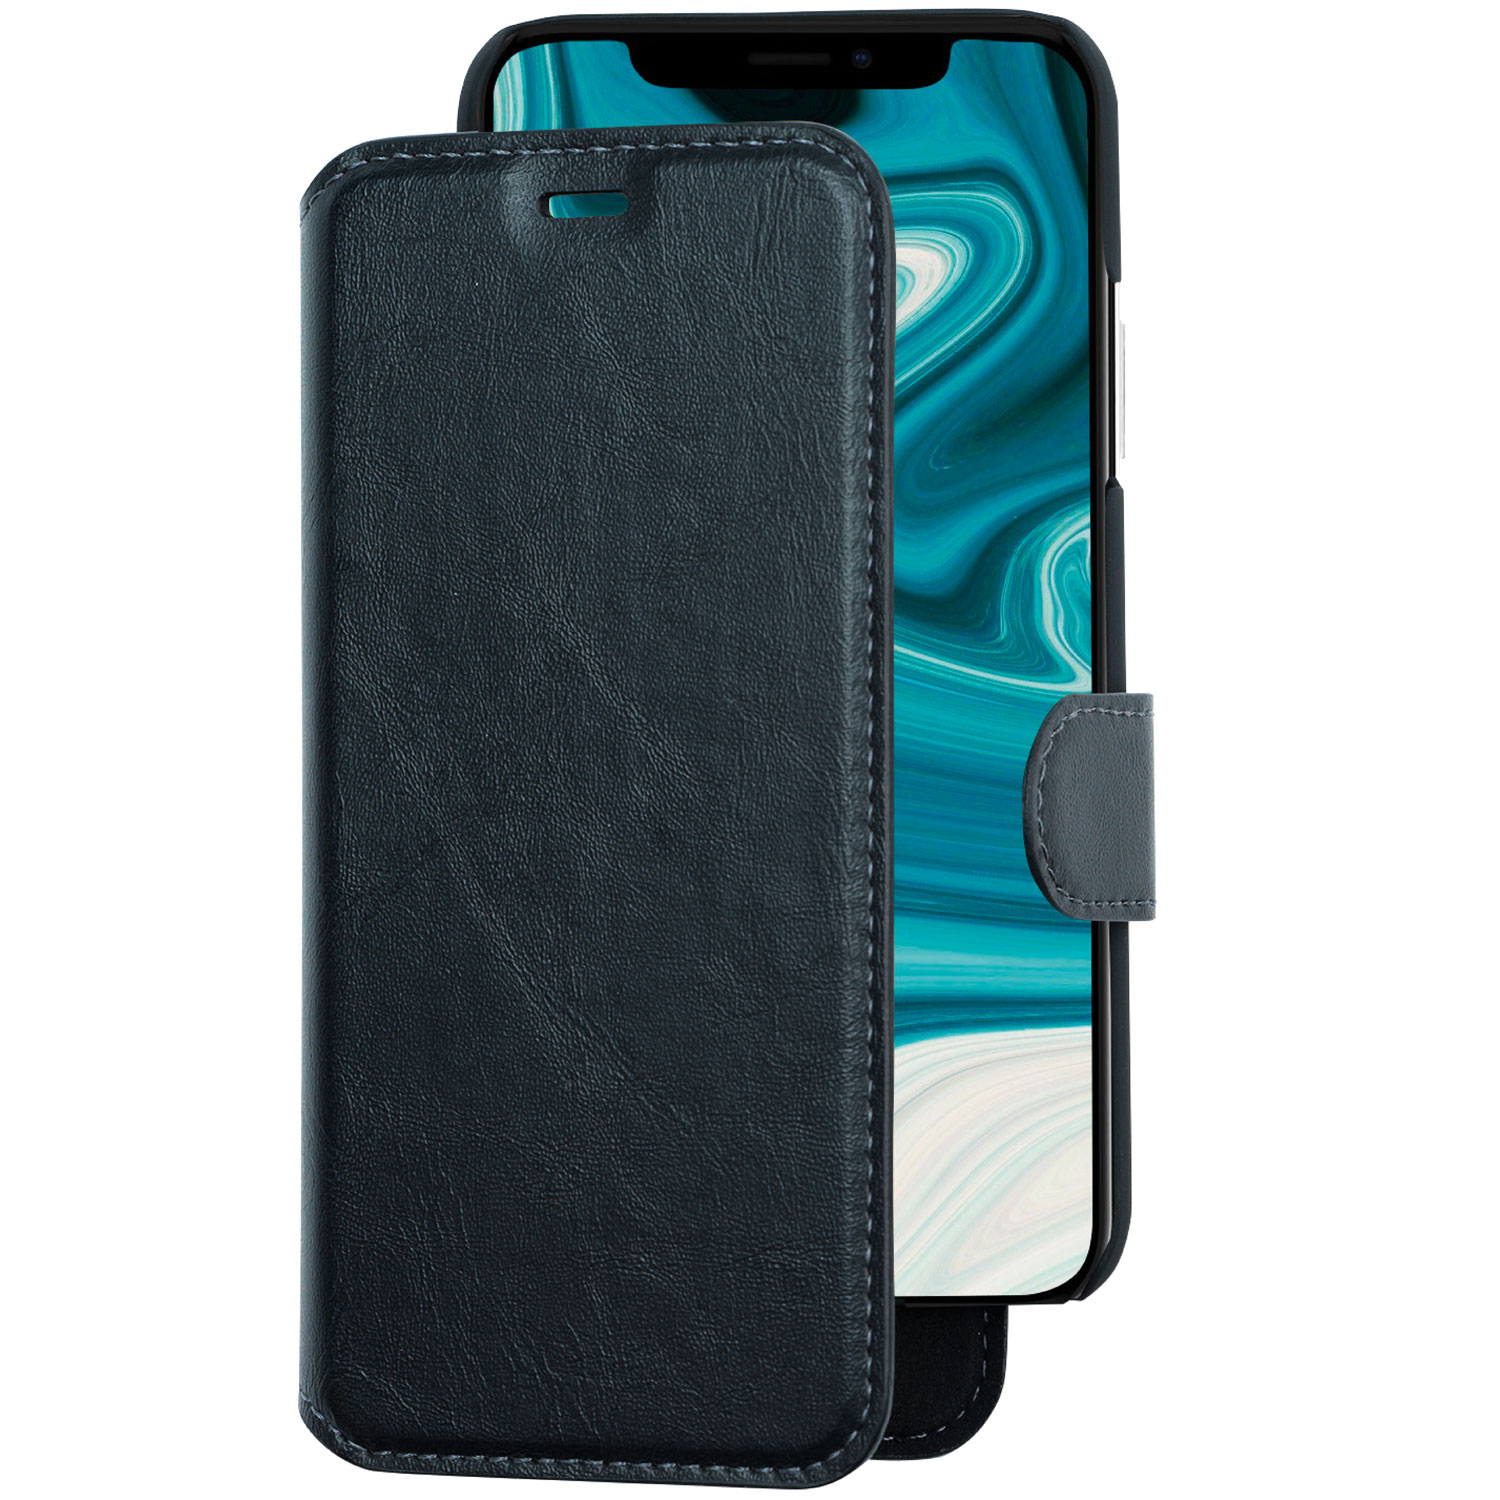 2-in-1 Slim Wallet Case iPhone 12 Max